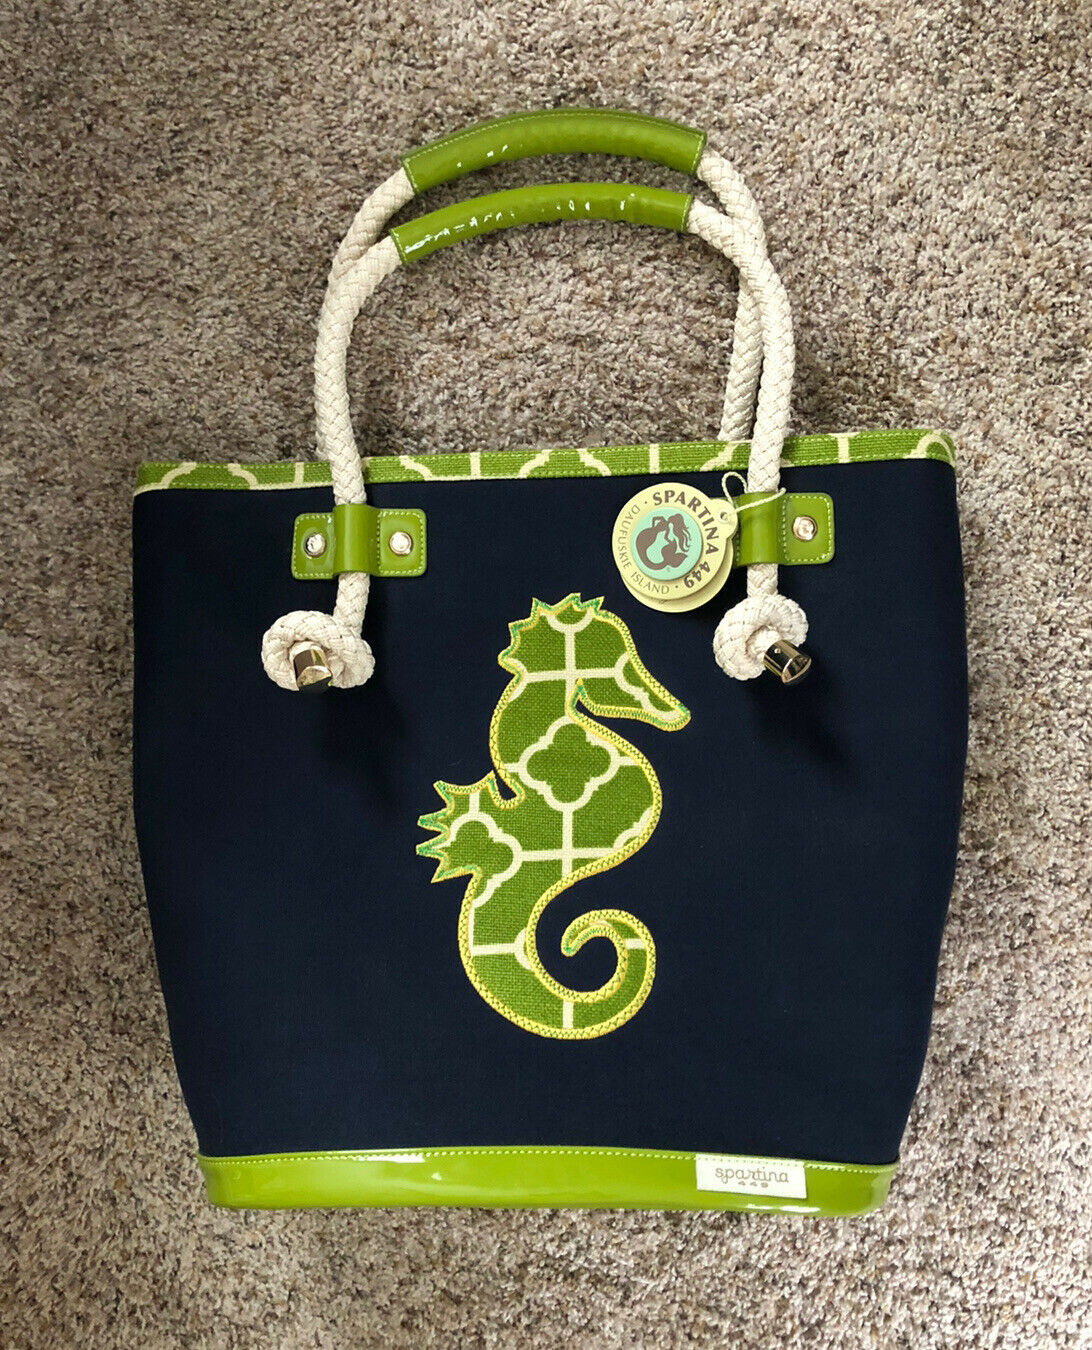 SPARTINA Seahorse Navy Canvas/Patent Leather Green X-Large Beach/Tote Bag - New!